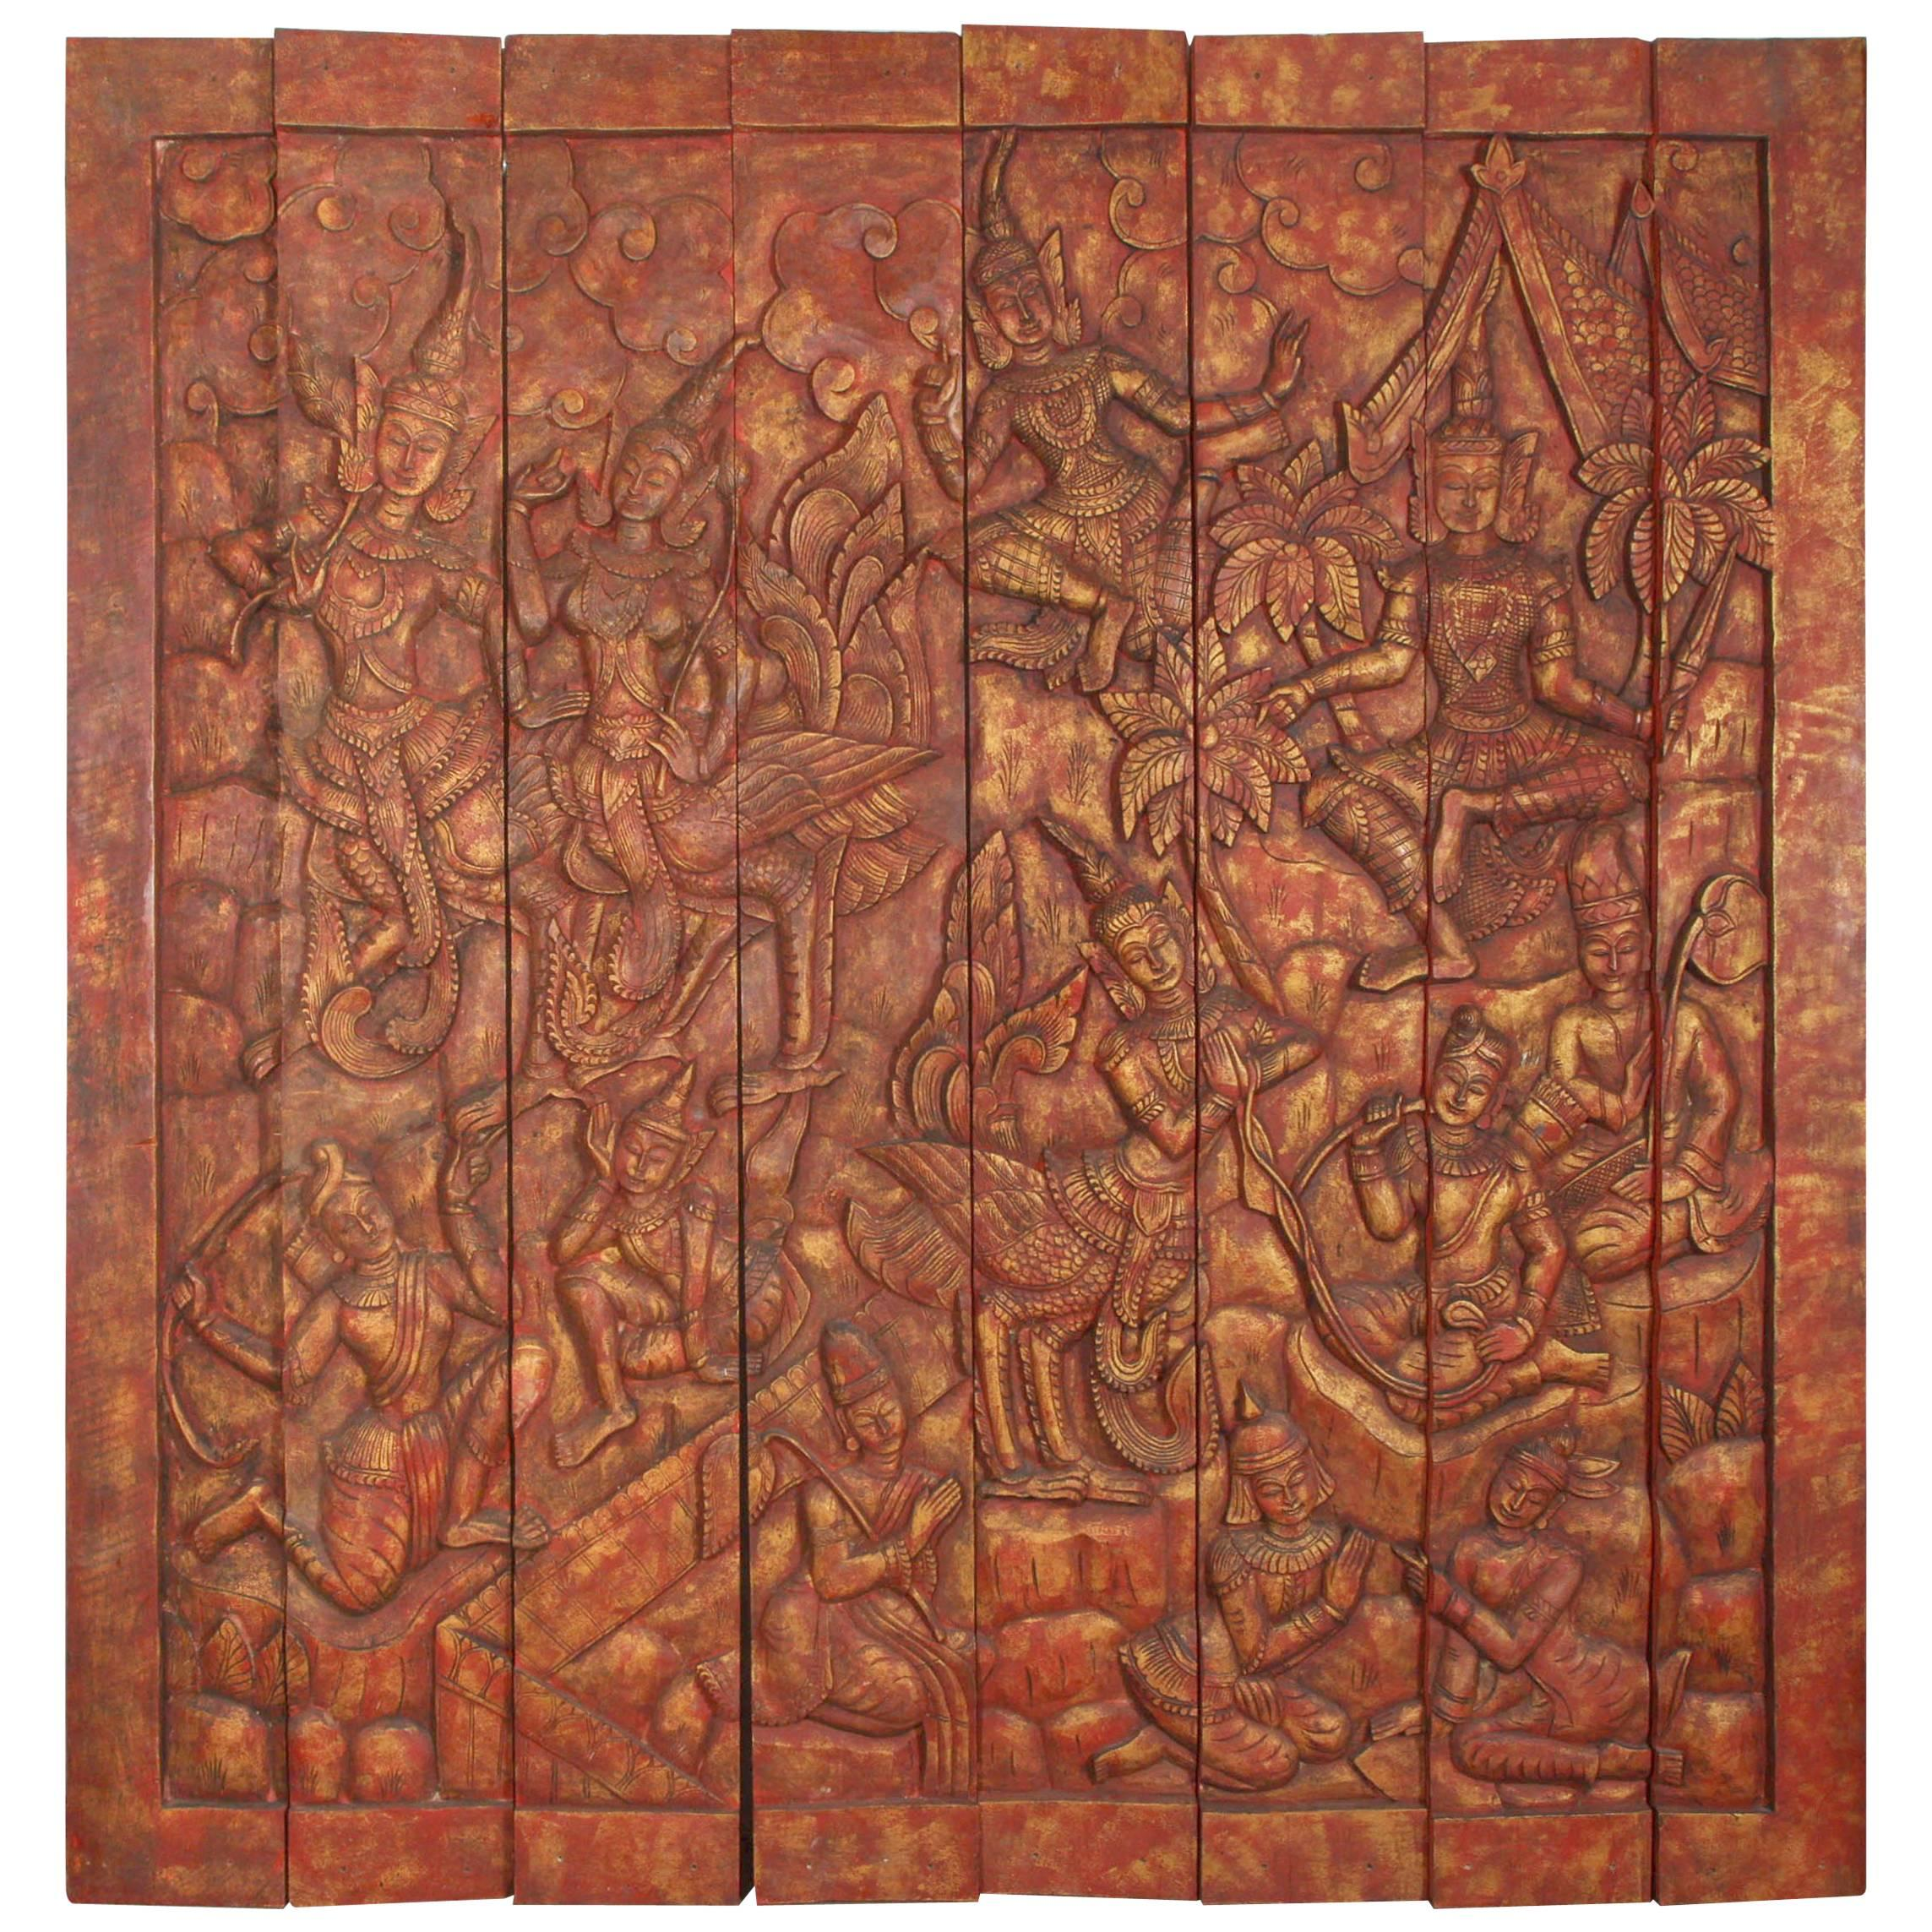 Antique Monumental Asian Hand-Carved Wooden Decorative Panel